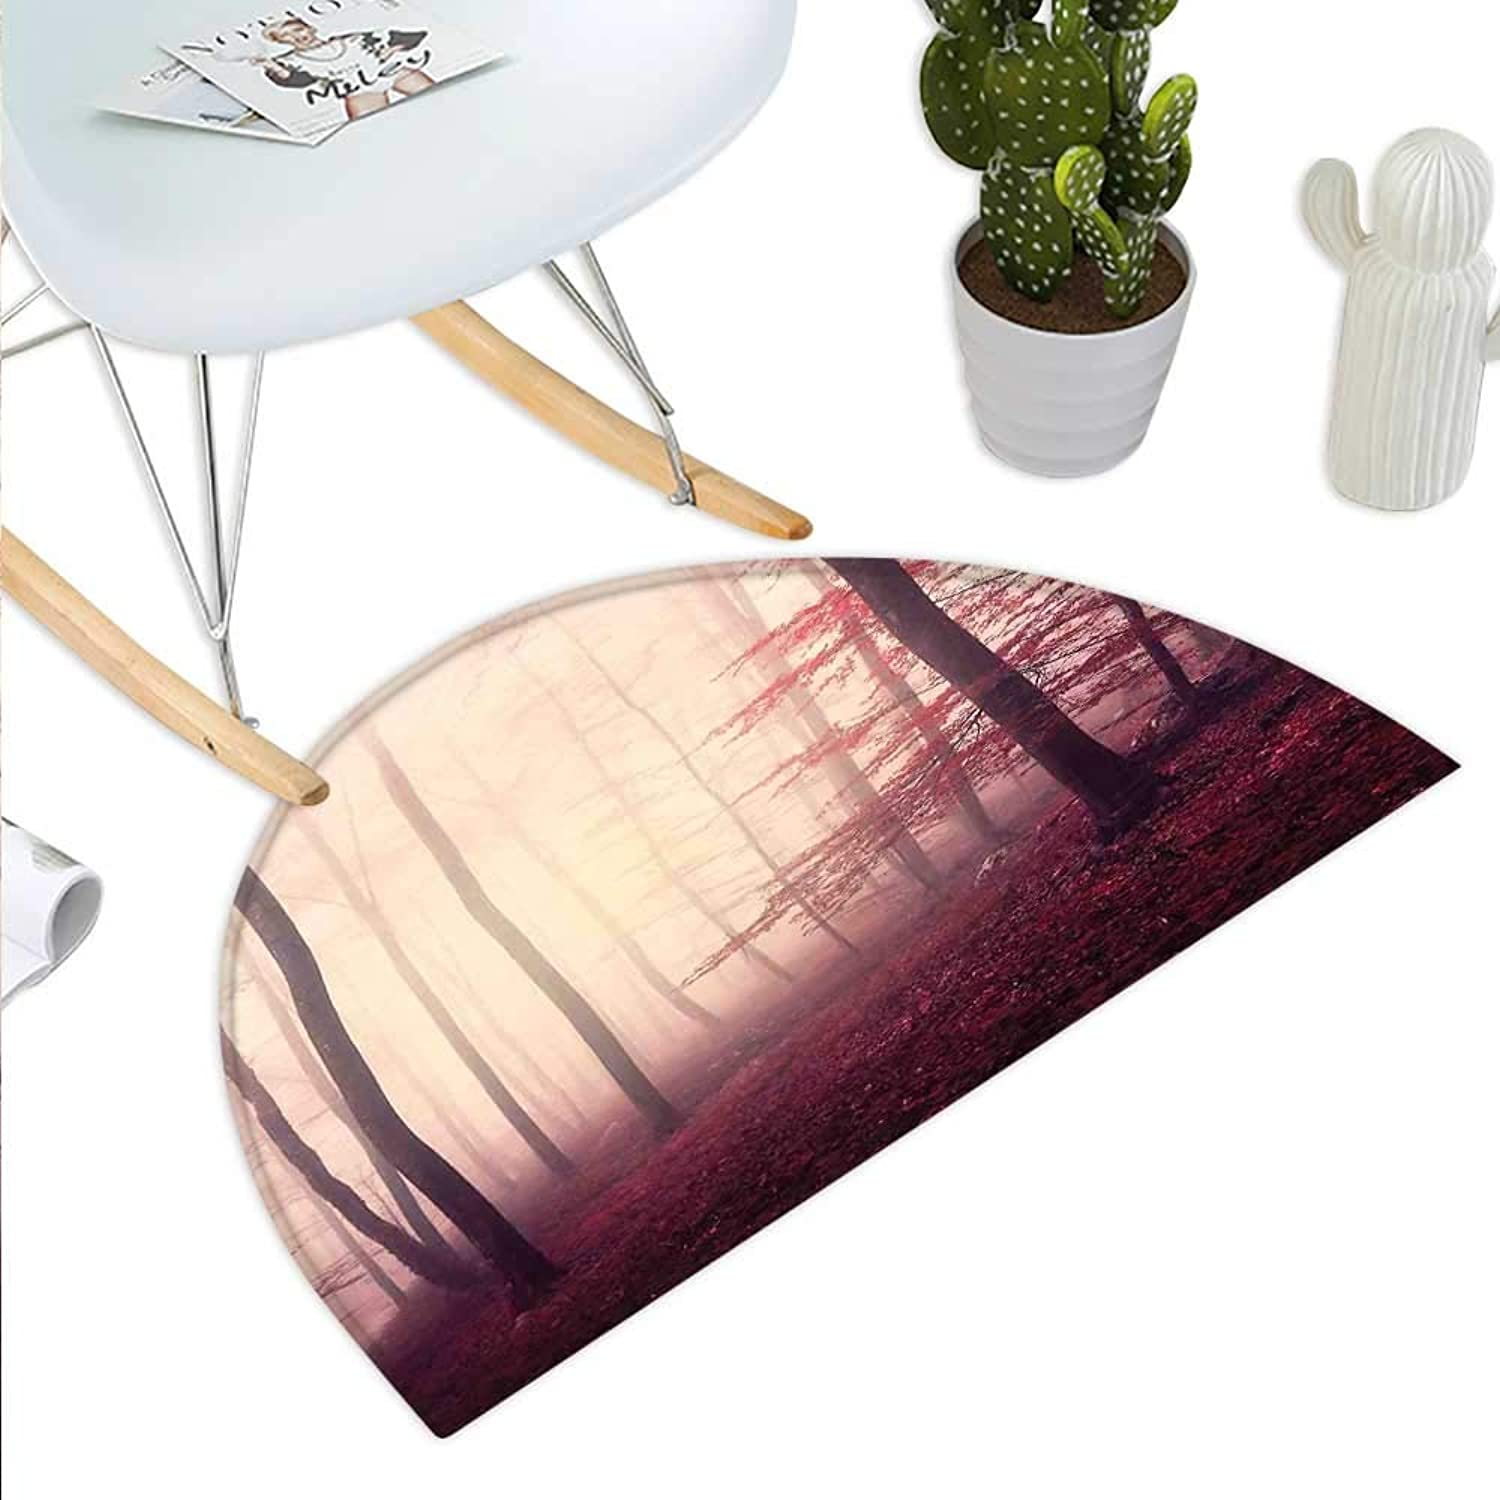 Woodland Decor Semicircle Doormat Fantasy Marsala color Foggy Forest Jungle Dreamy Wilderness Woods Sunlight Halfmoon doormats H 43.3  xD 64.9